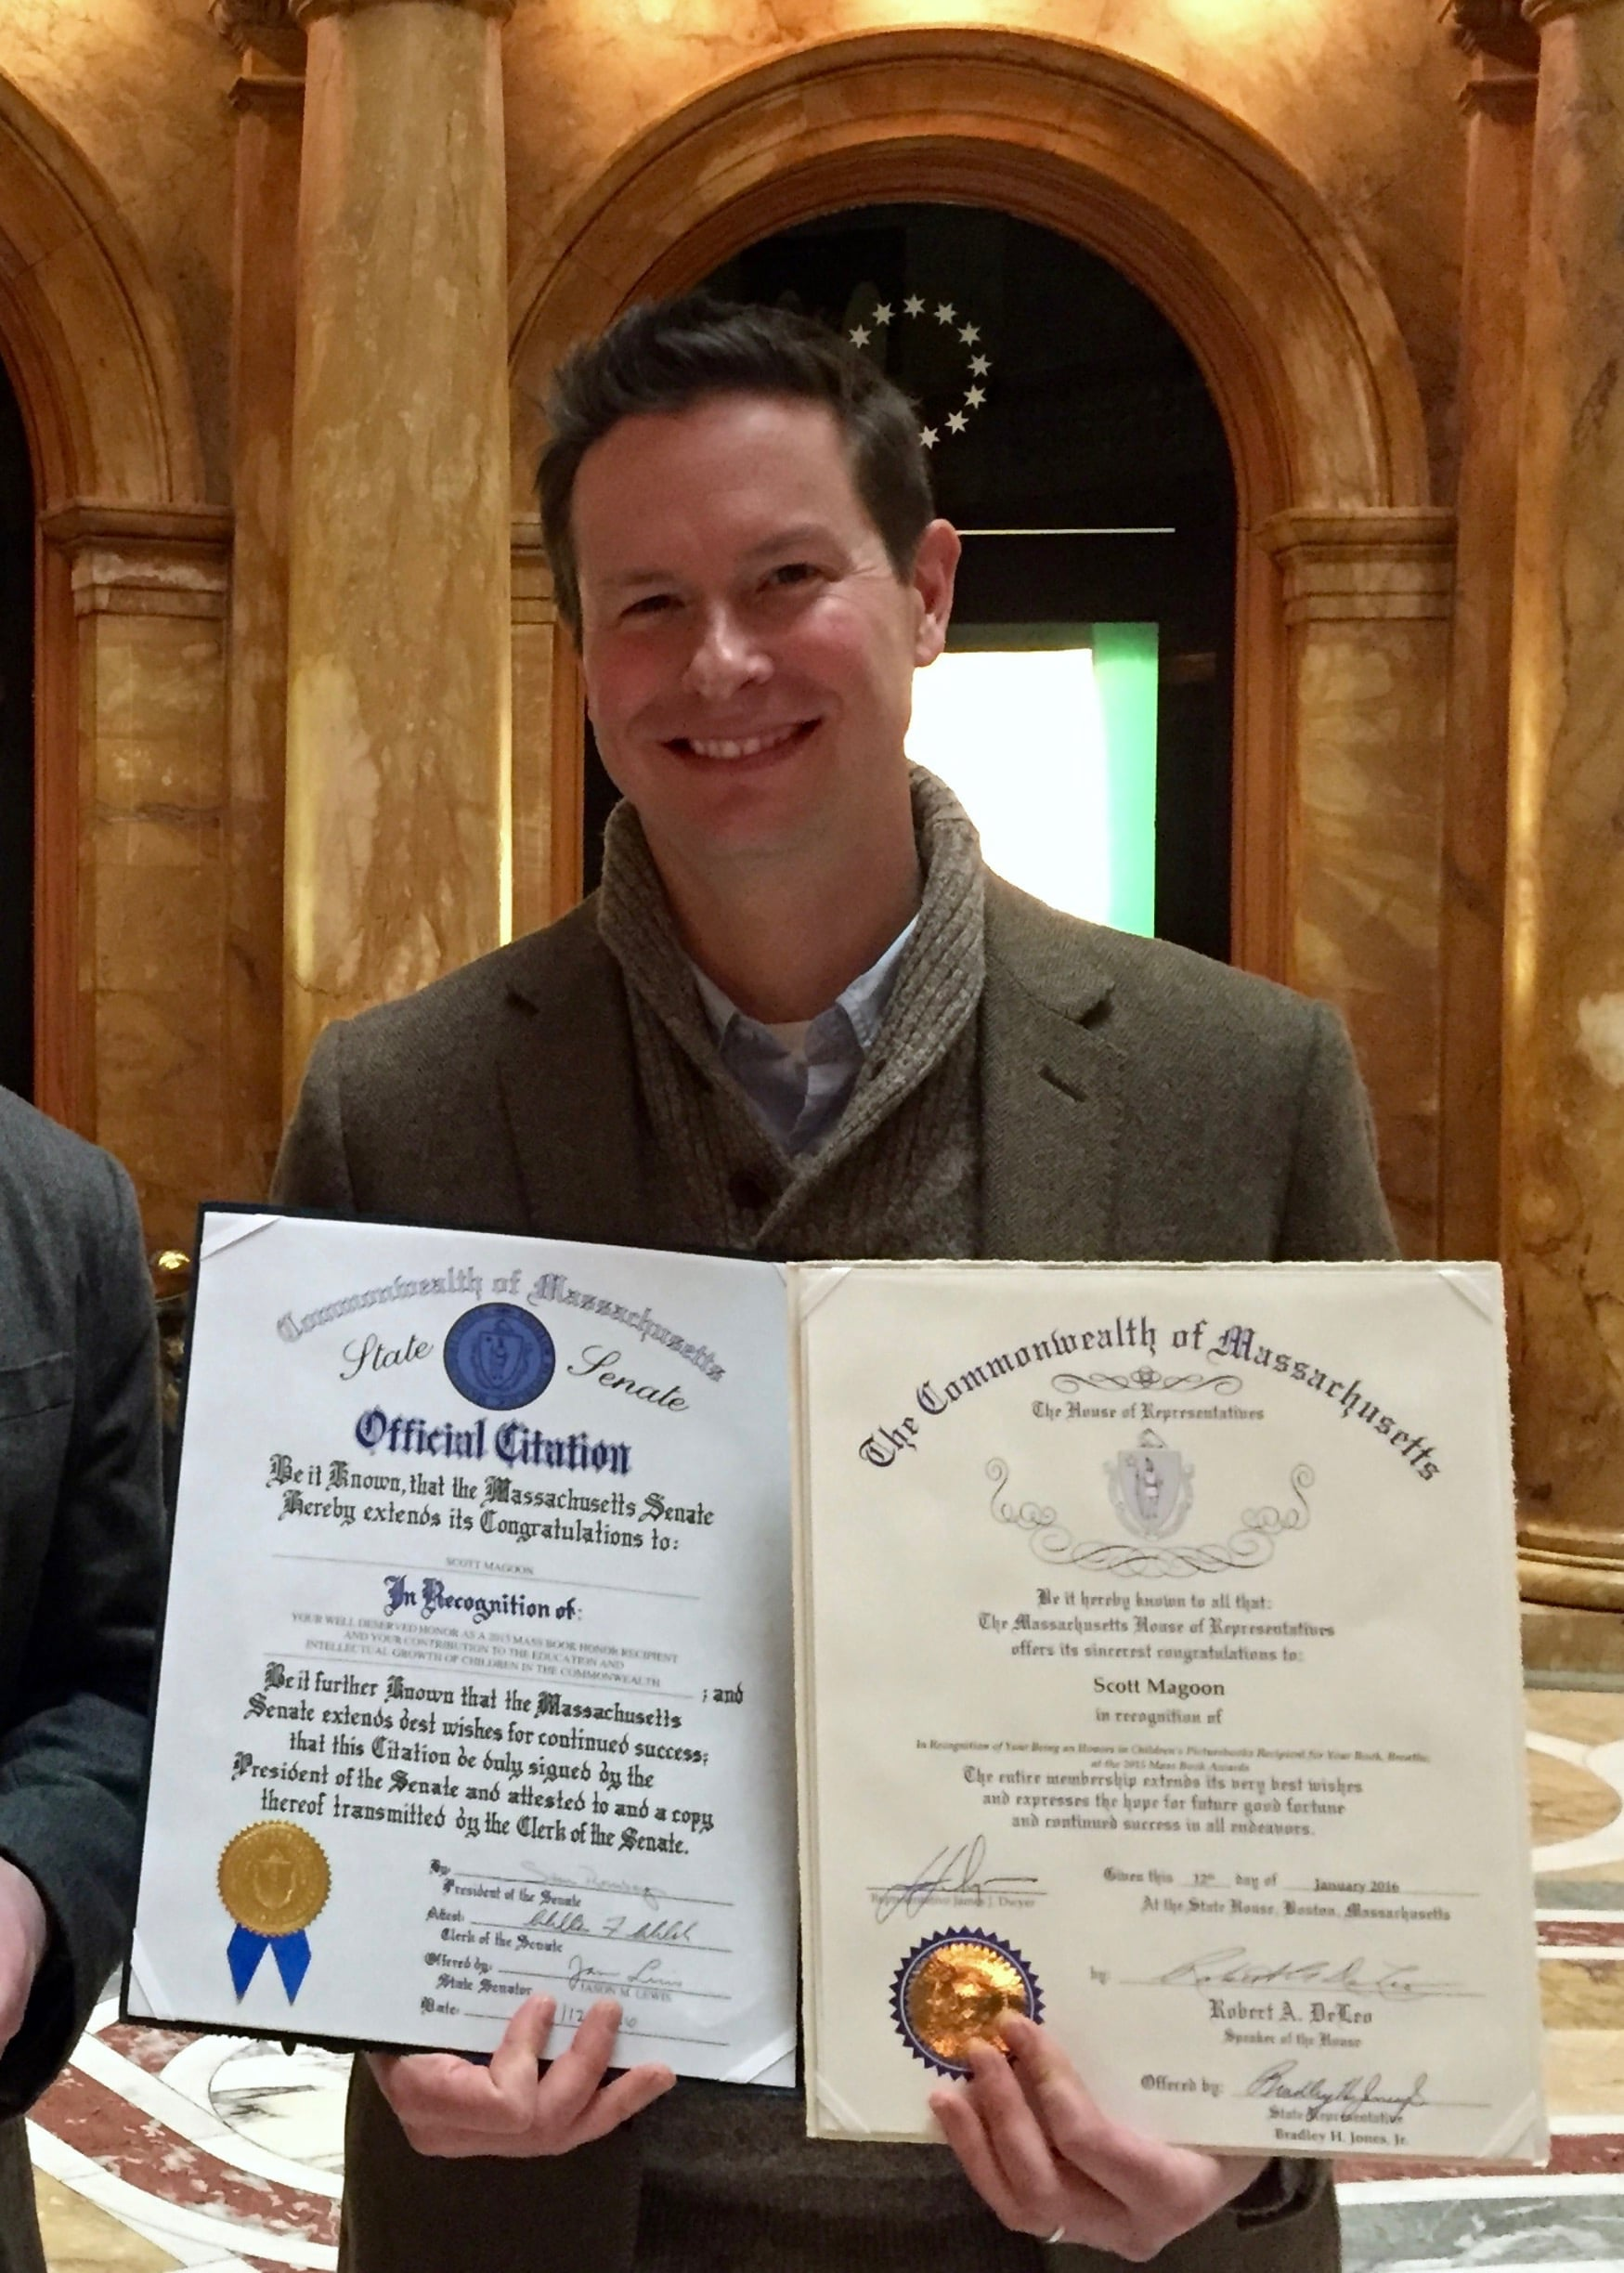 Here I am with my citations from the Massachusetts House of Representatives and the Massachusetts State Senate. Wow!!